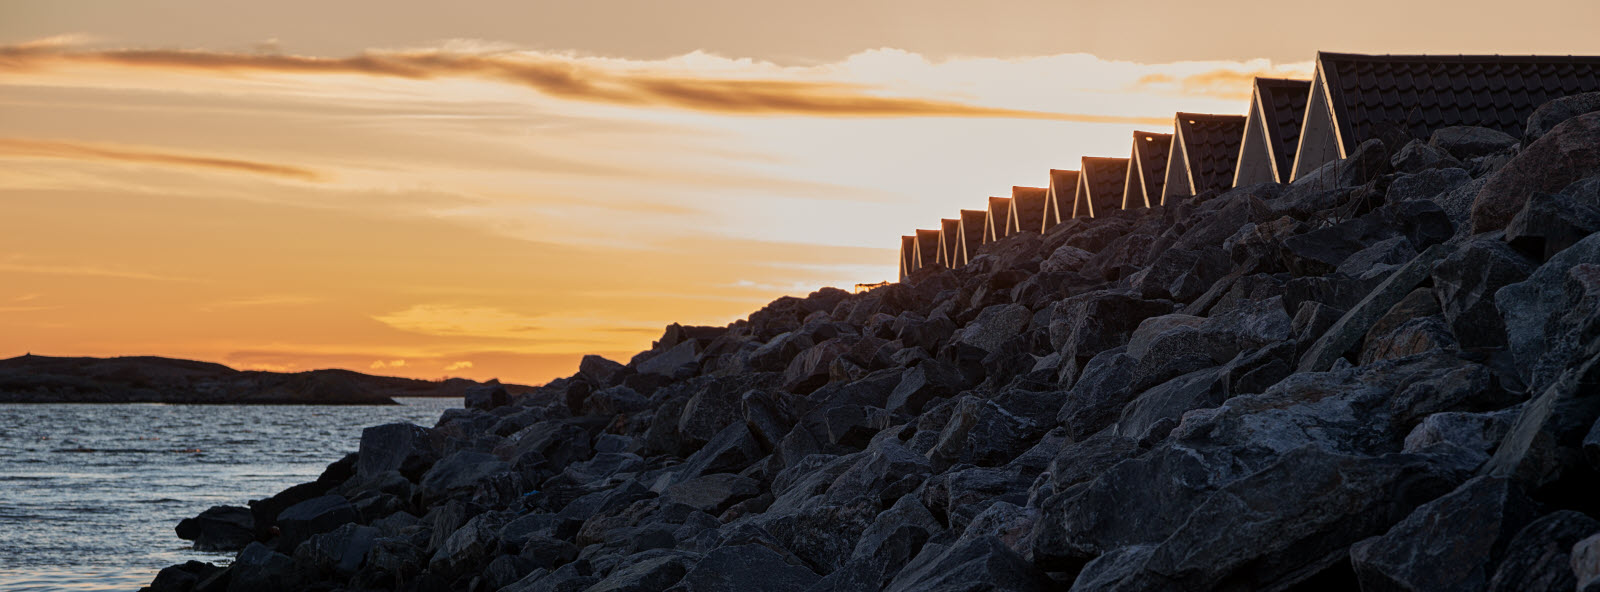 16054746-coastal-sunset-with-breakwater-made-of-ro.jpg